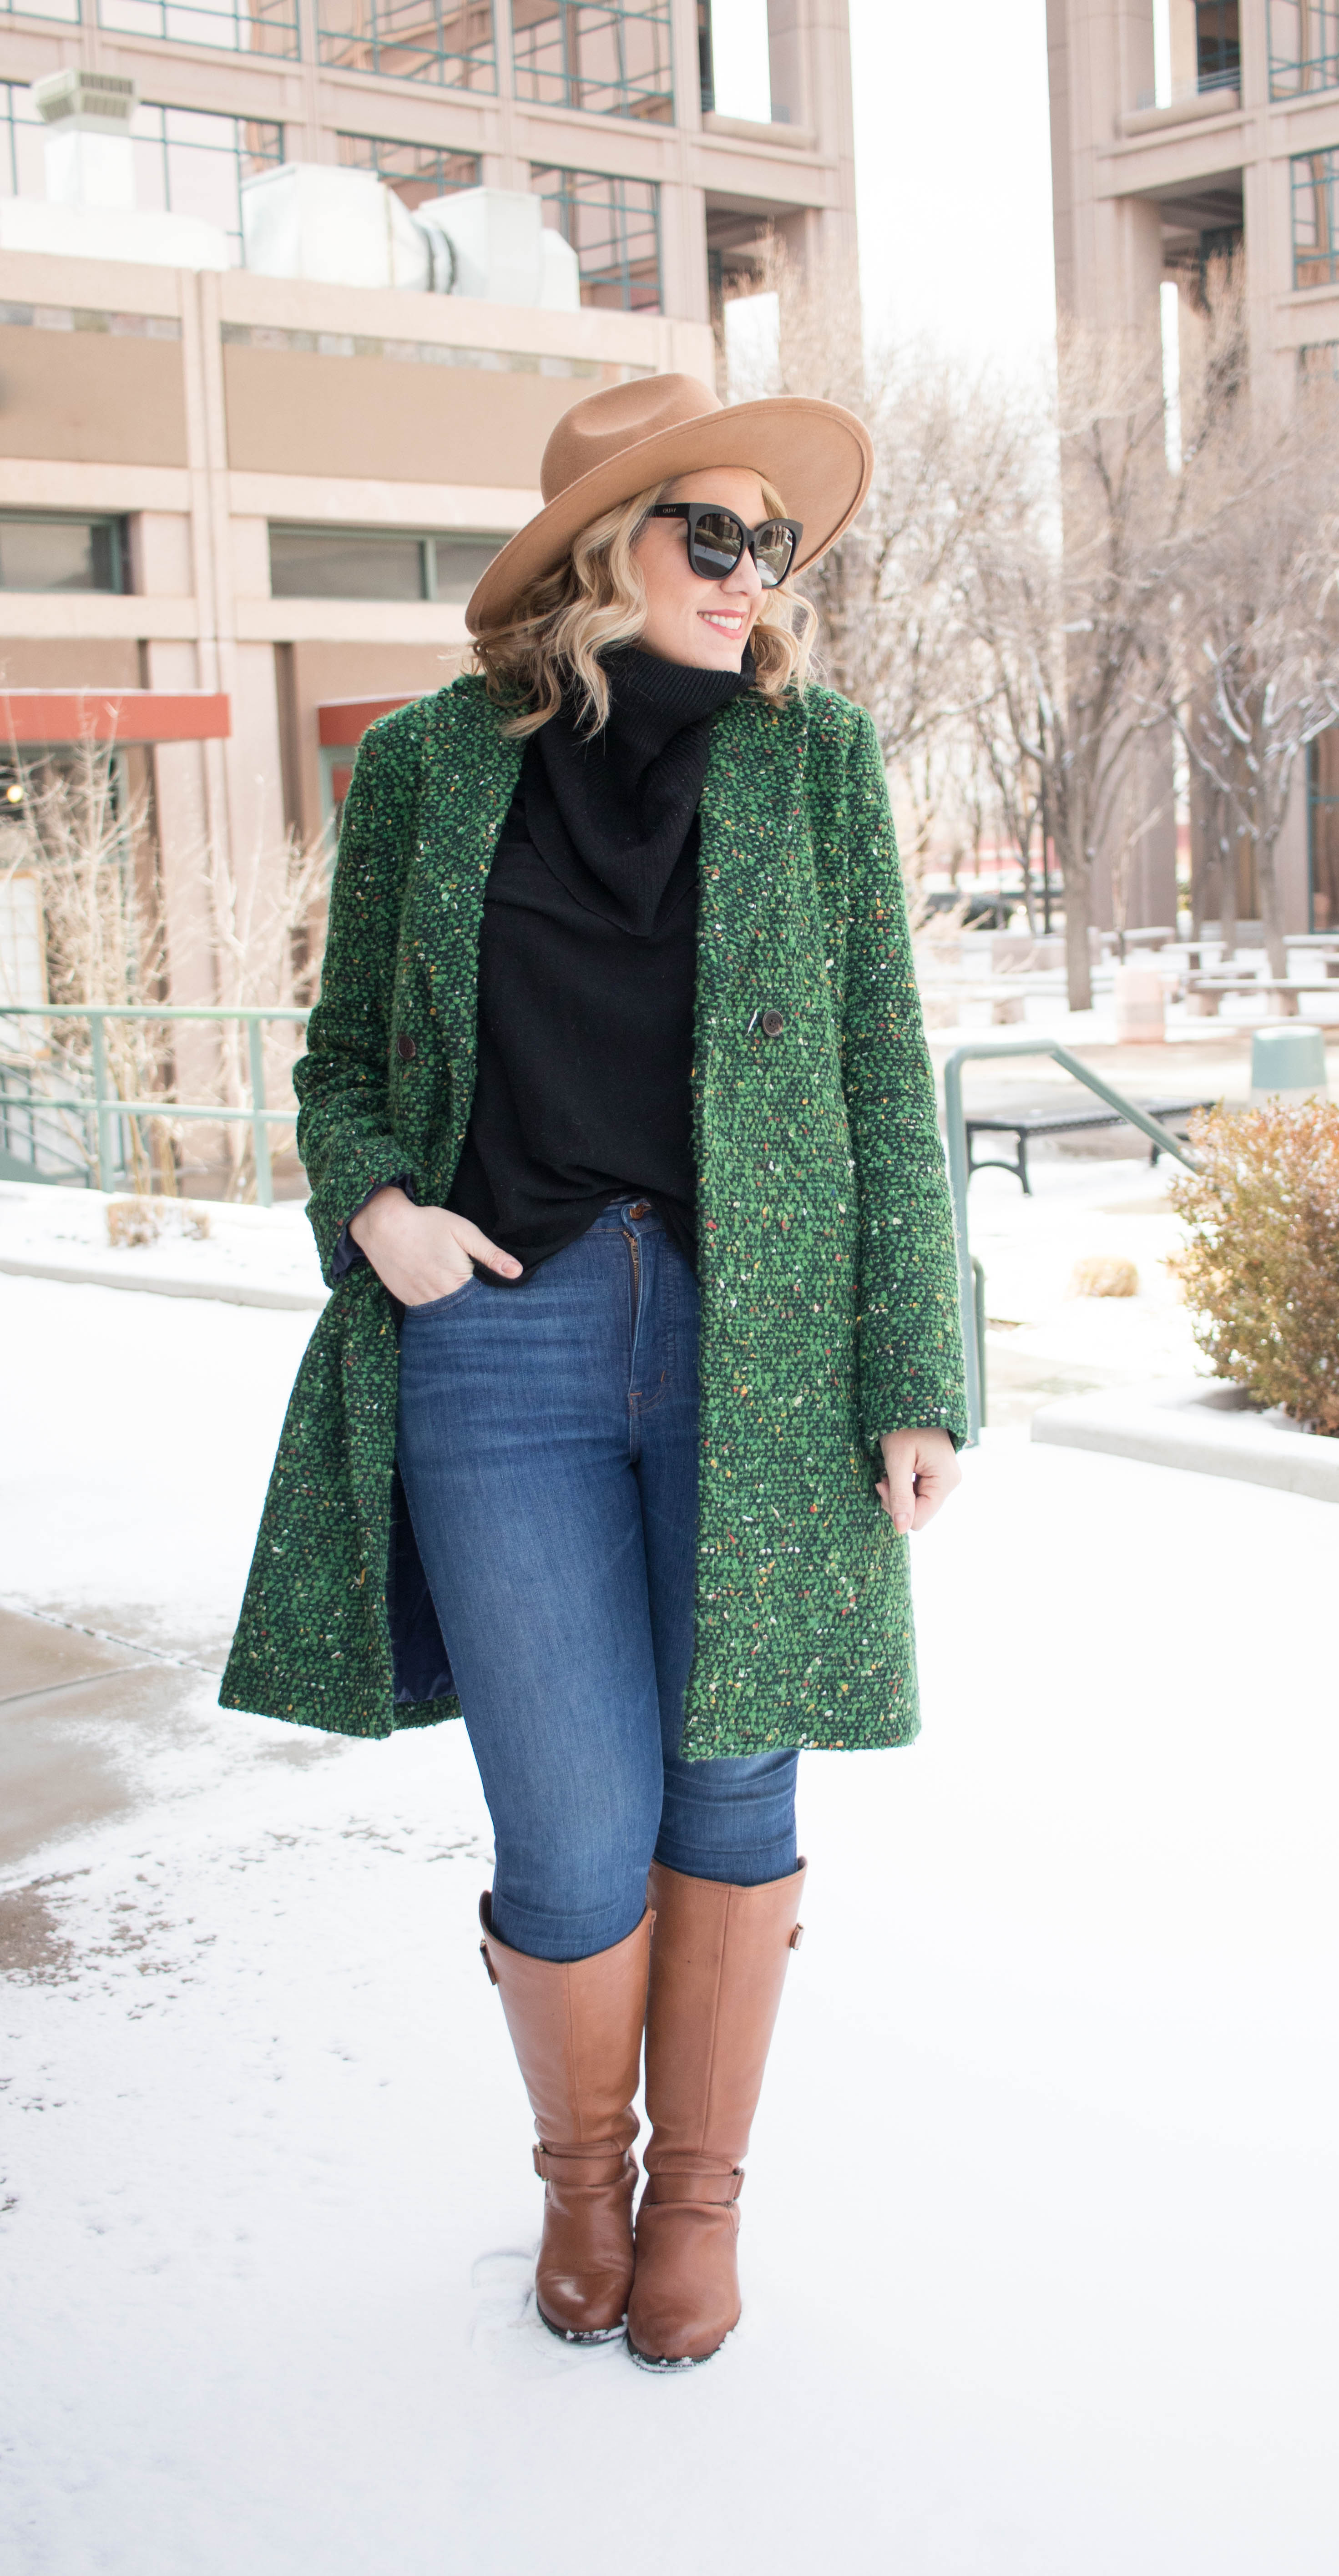 how to style tall riding boots #tallboots #widecalfboots #winterfashion